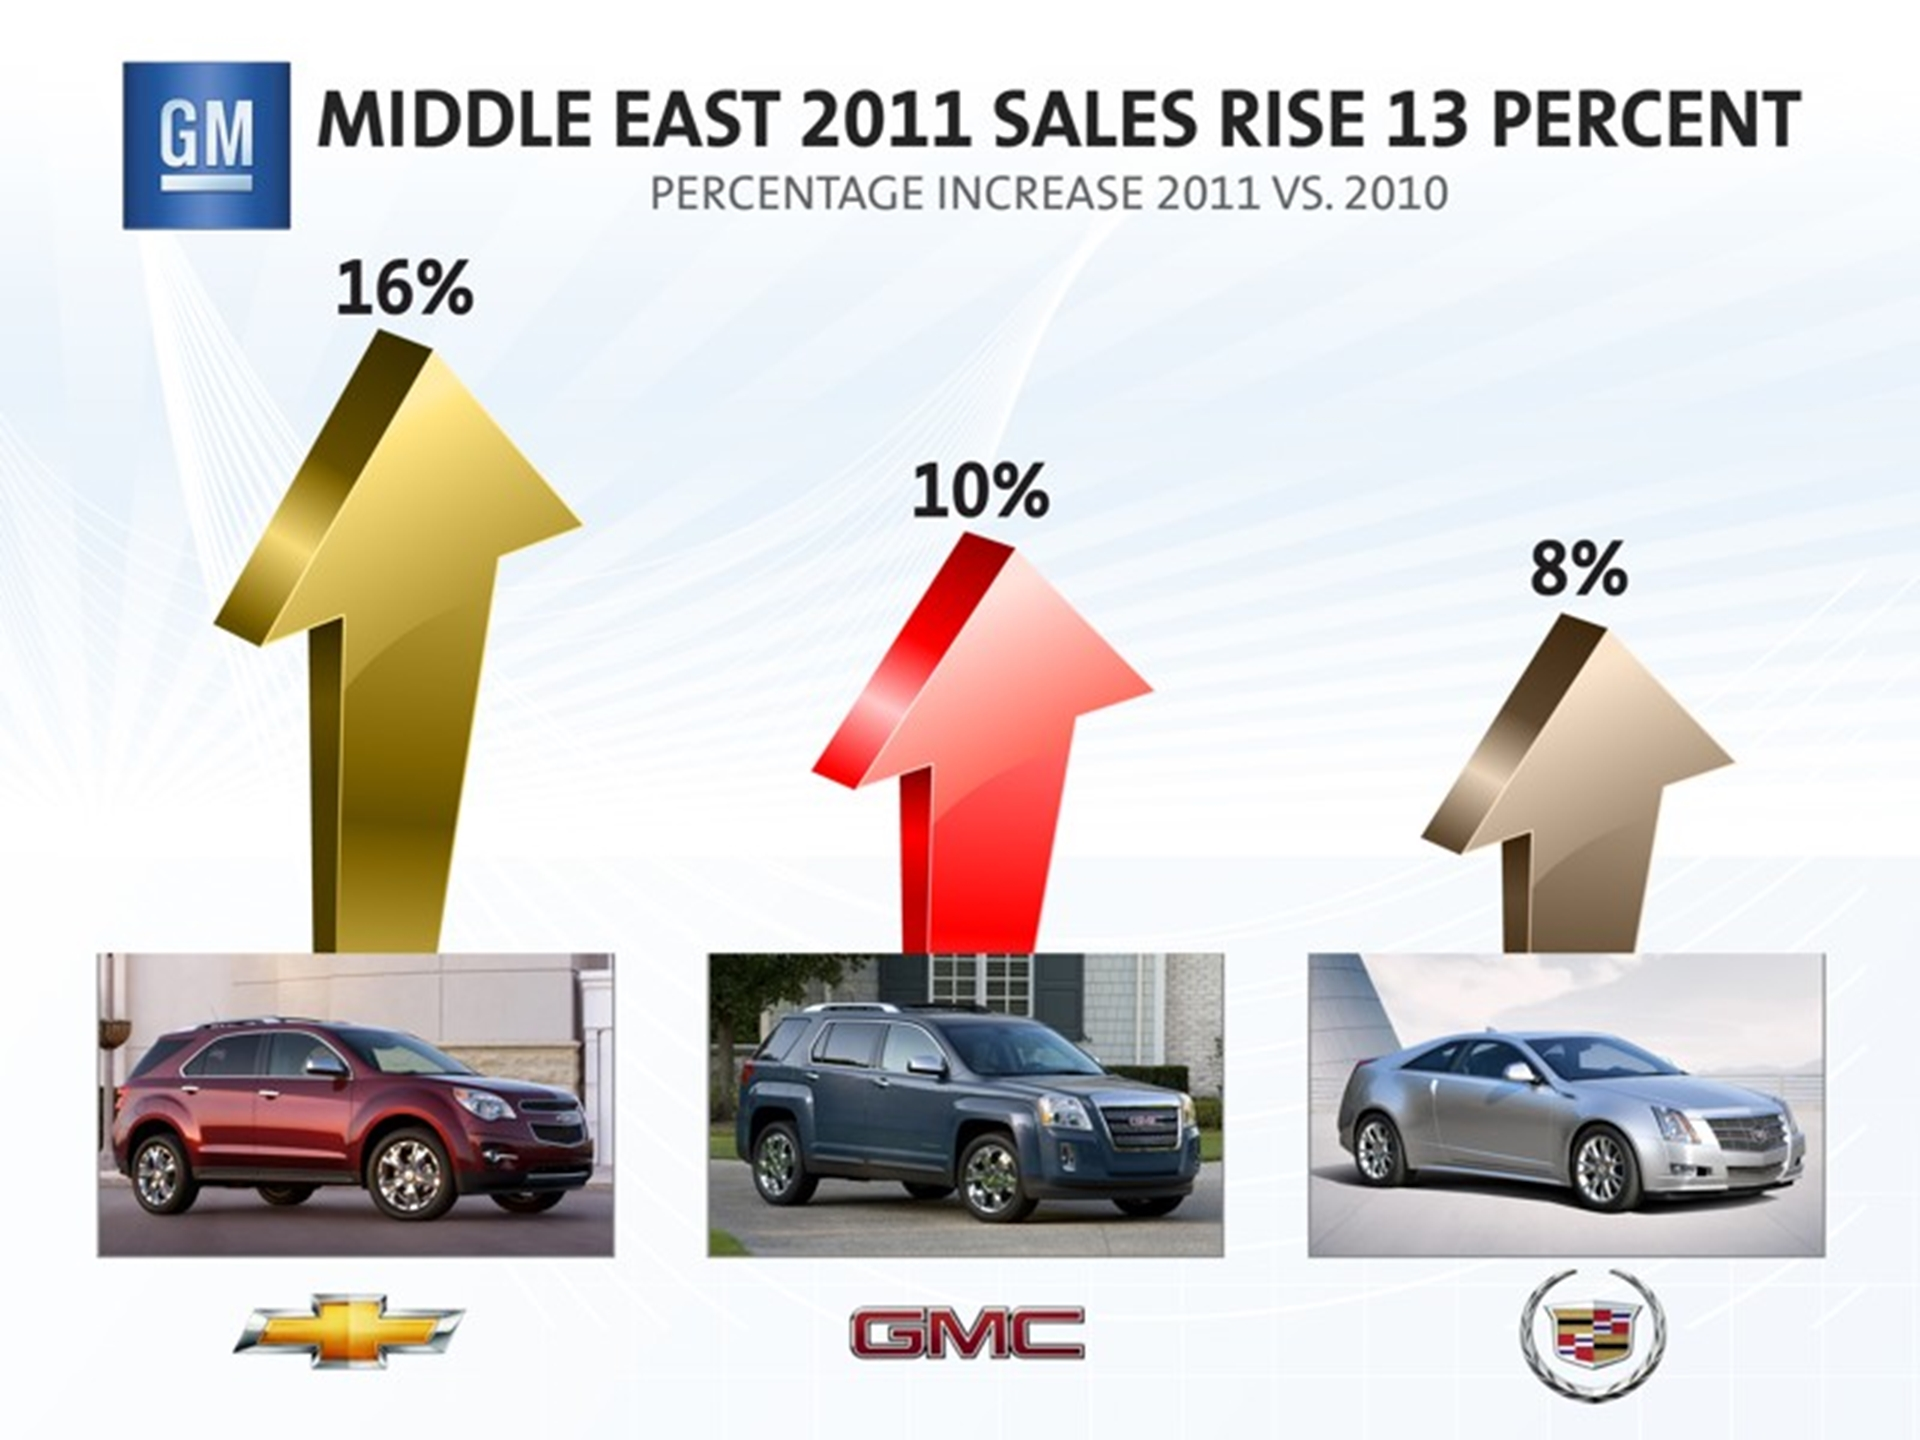 GM Middle East 2011 Sales